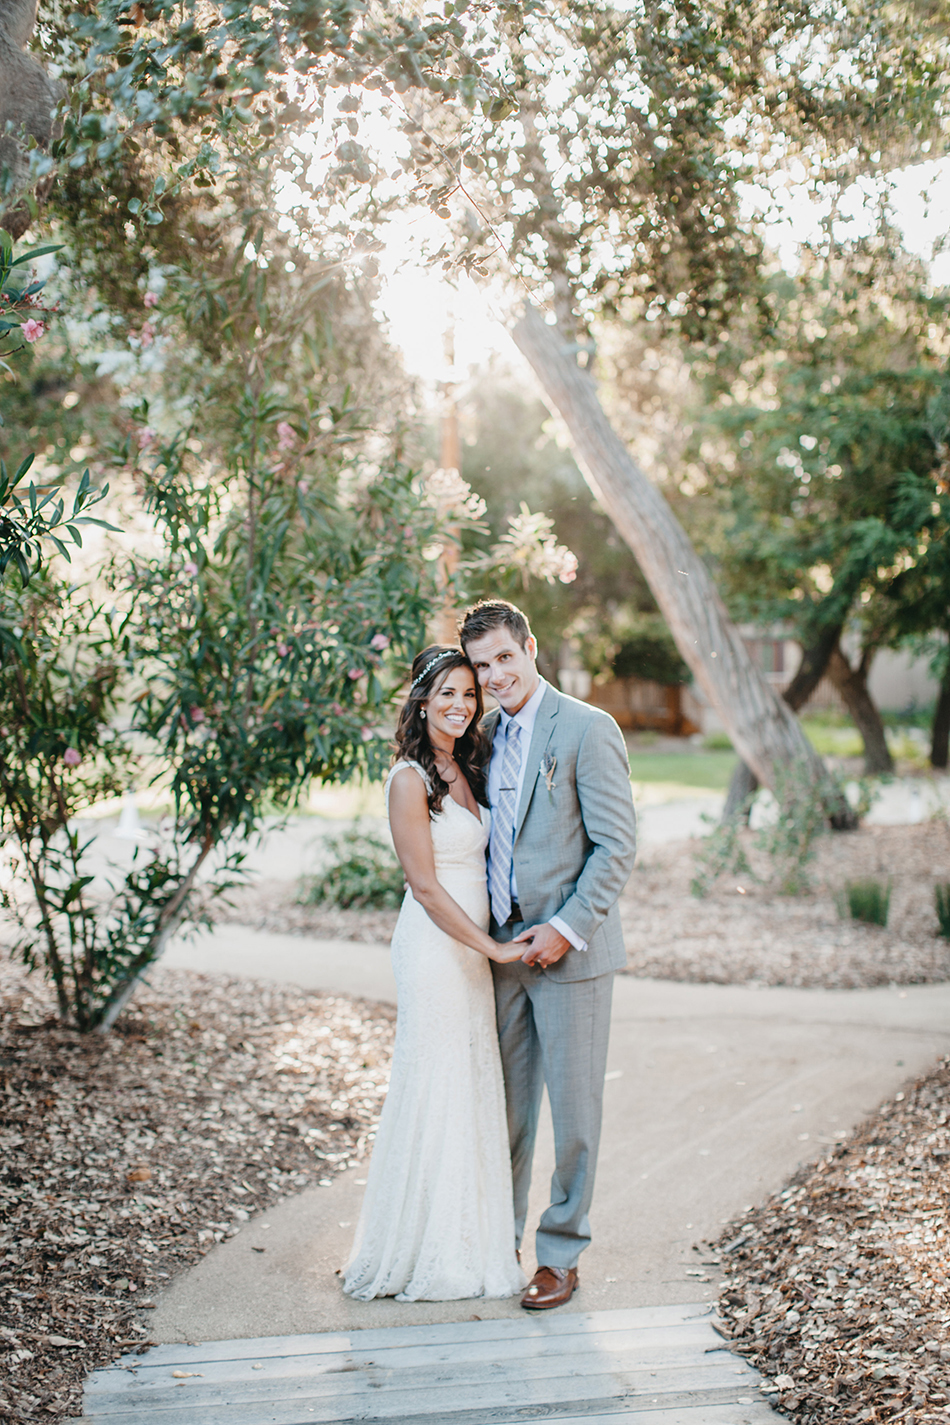 elizabethdye_california_realwedding_06.jpg